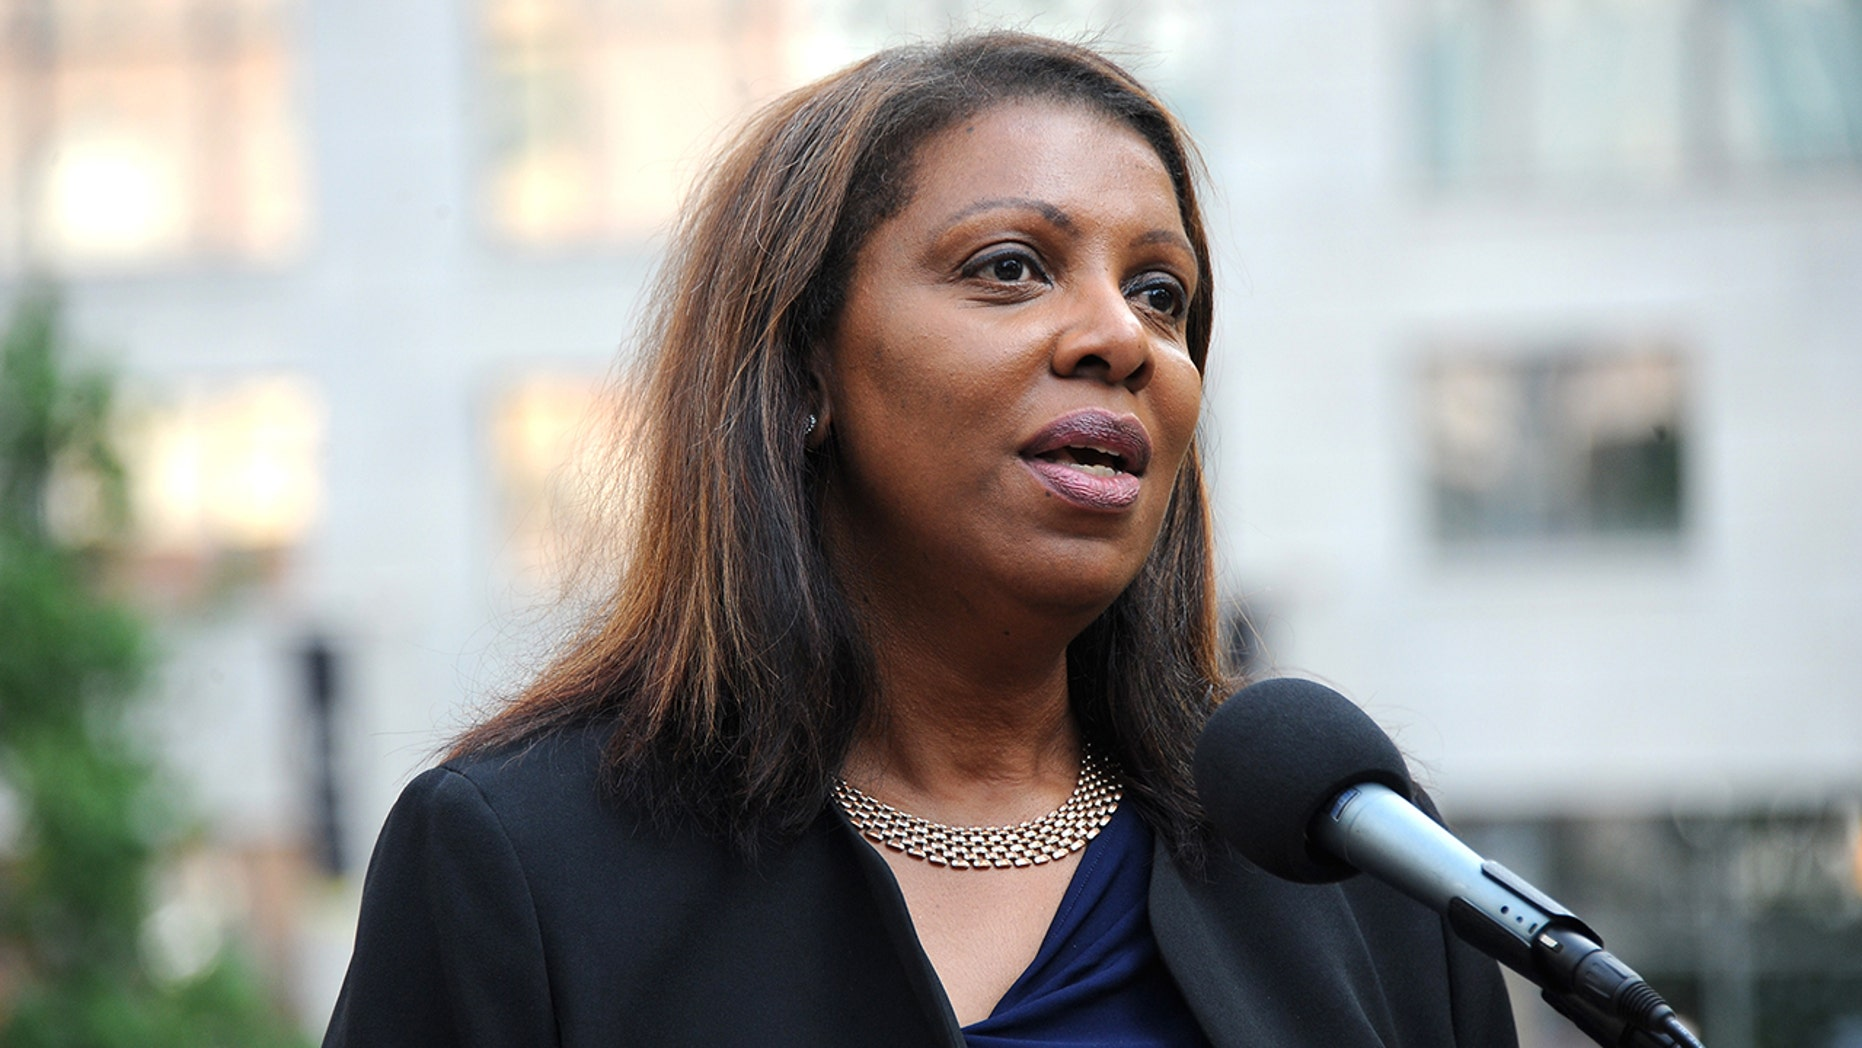 Letitia James, now New York's attorney general, speaksin New York City in this 2017 file photo. (Photo by Desiree Navarro/Getty Images)